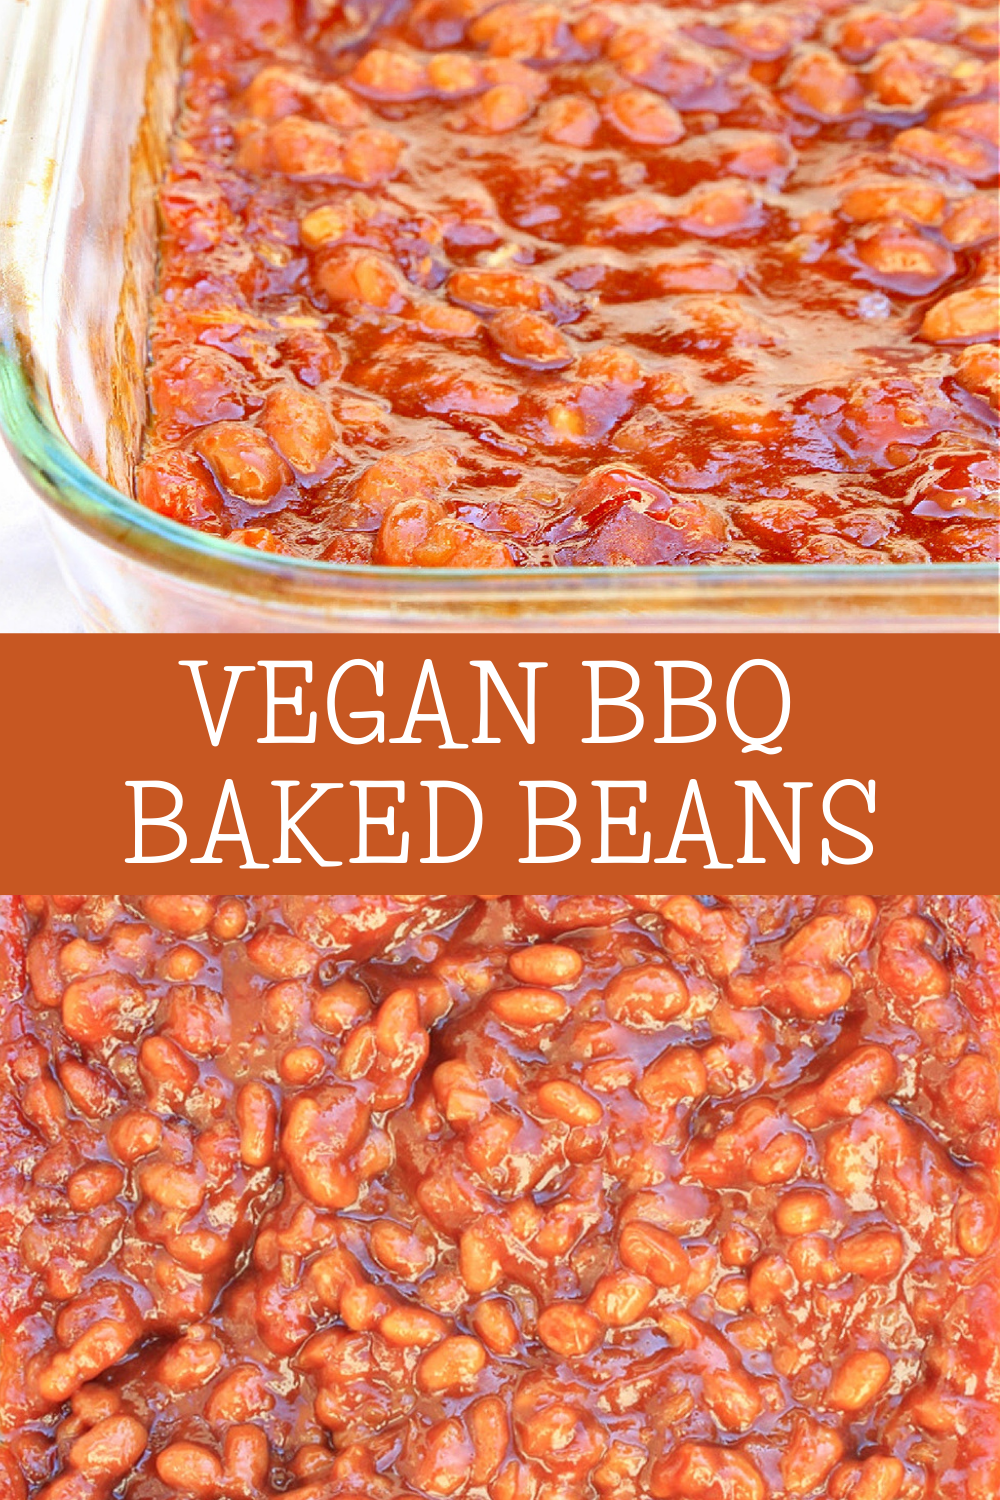 Vegan BBQ Baked Beans ~ A sweet and savory summer side dish that pairs well with burgers, grilled veggies, and pasta salads. Perfect for Father's Day weekend or the 4th of July! via @thiswifecooks